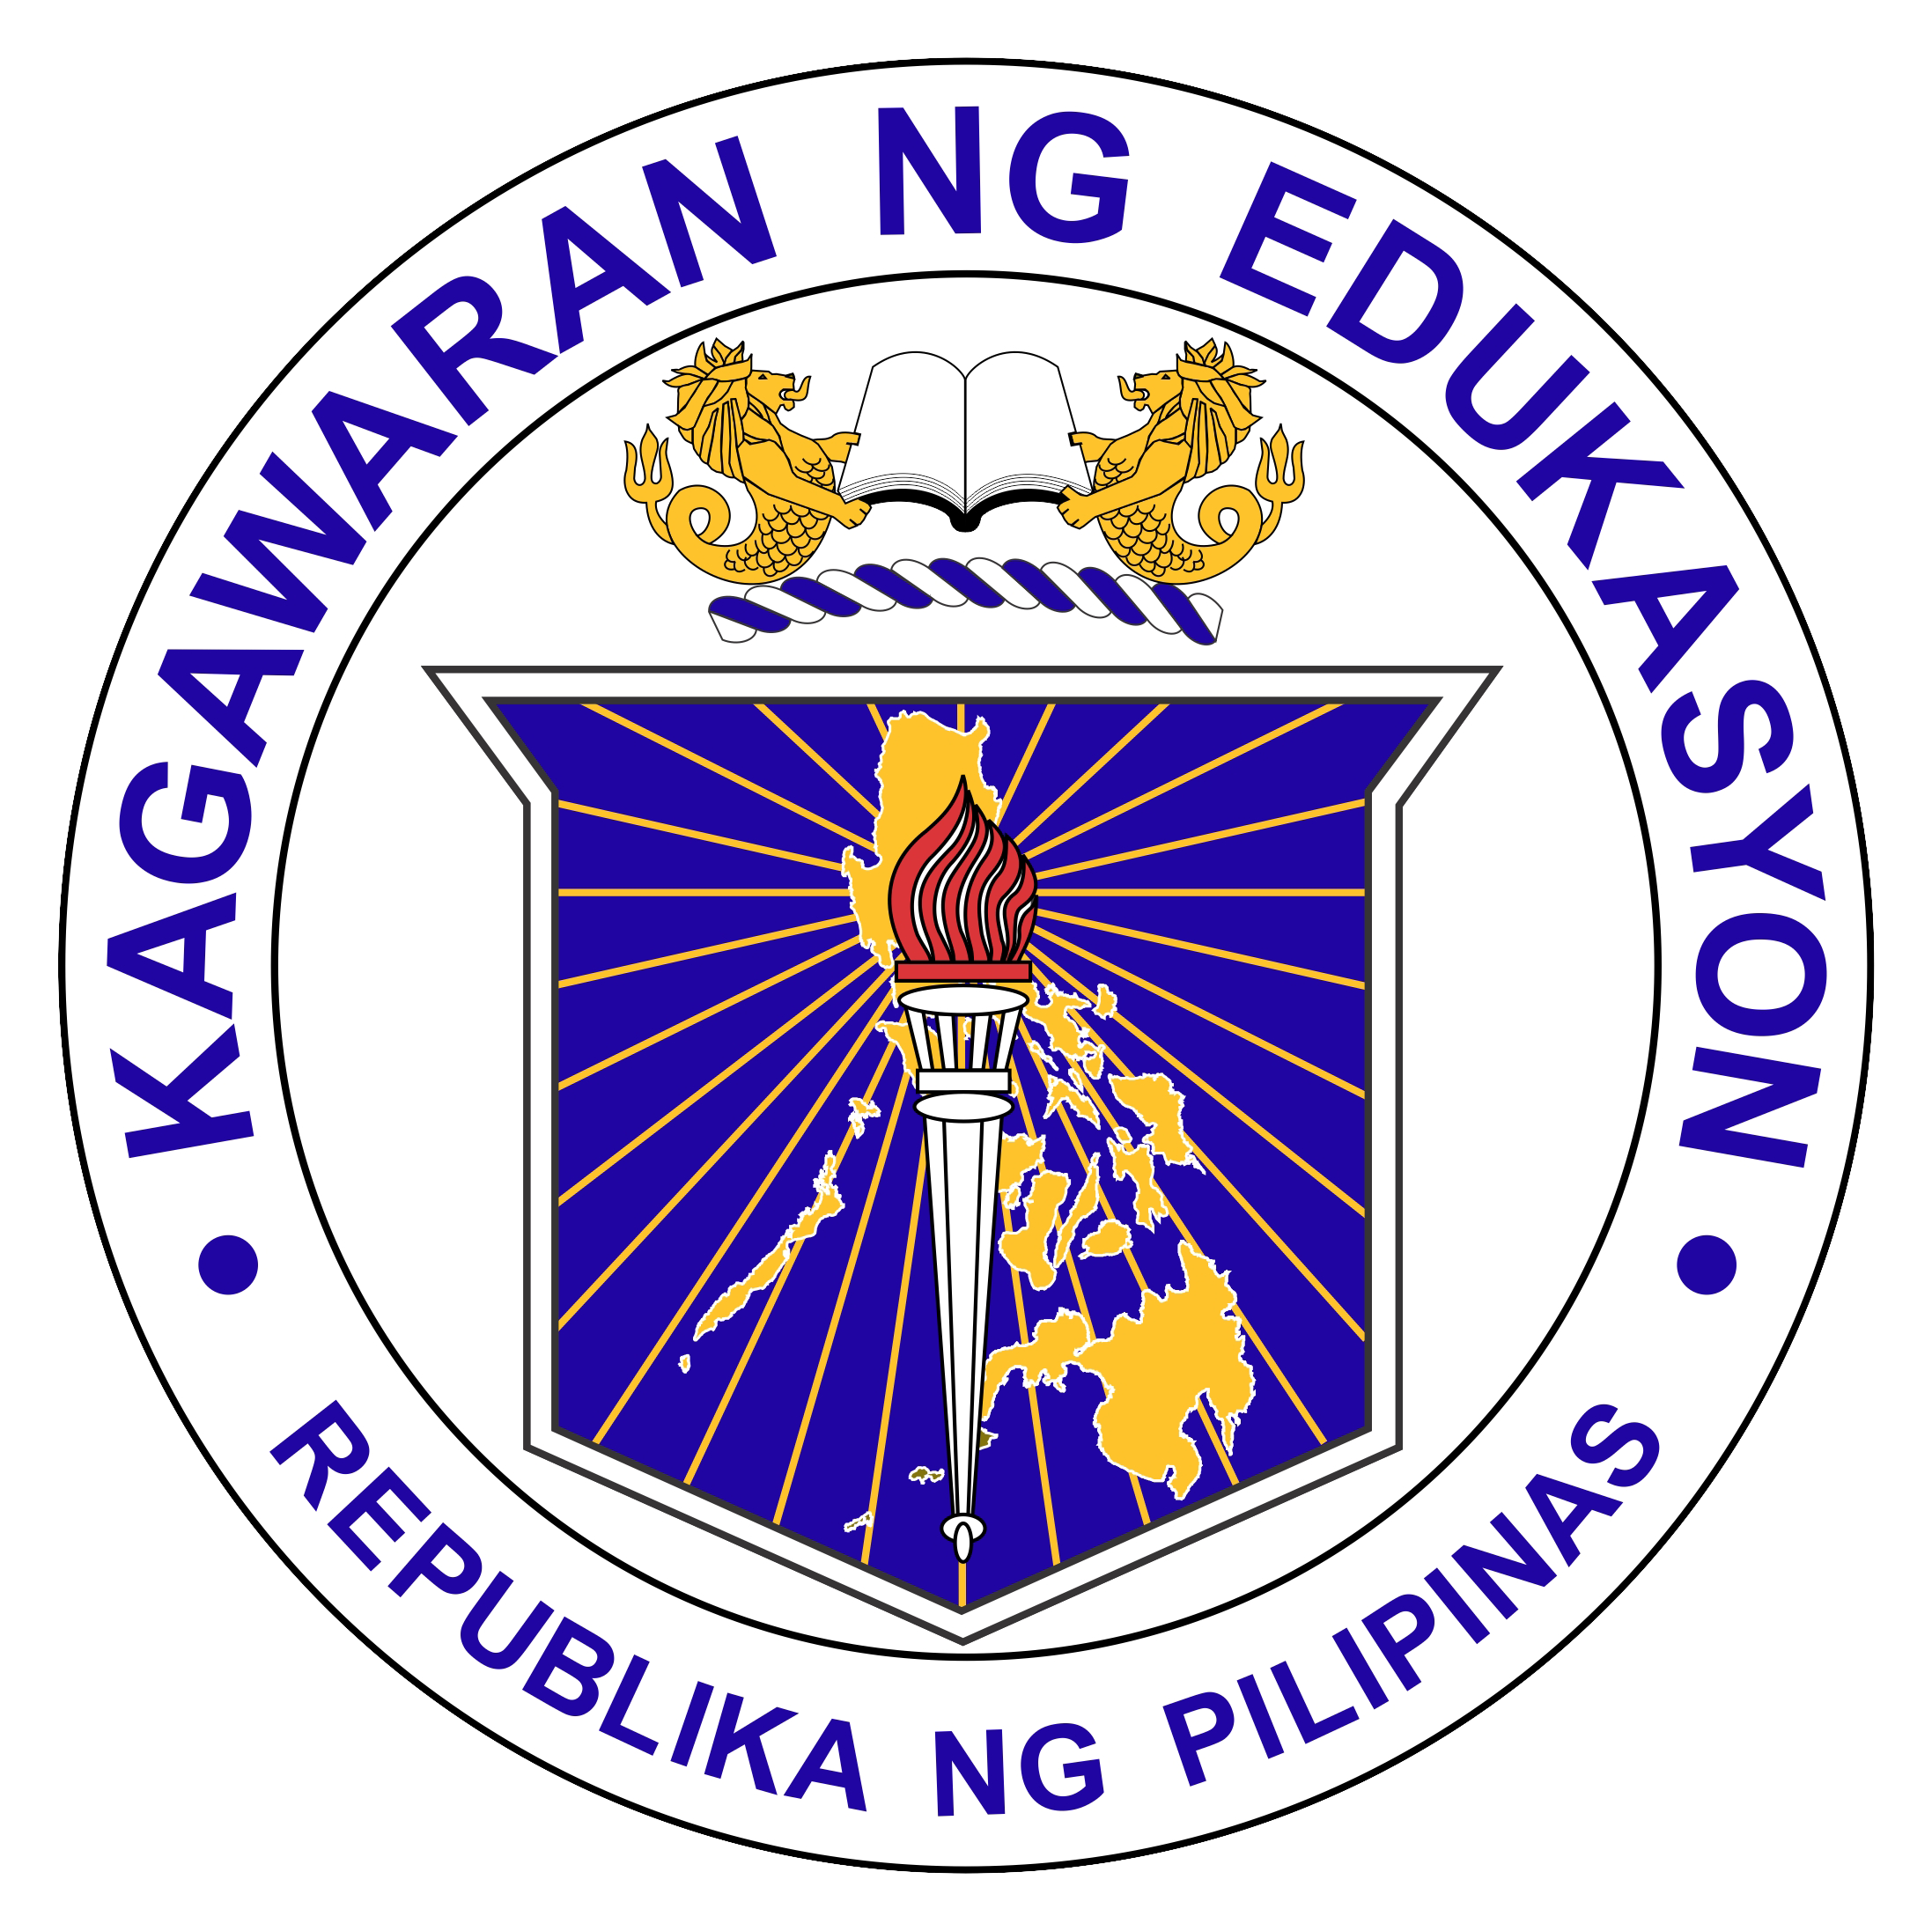 Classic filipino house clipart graphic library stock Department of Education of the Philippines   philippines   Pinterest ... graphic library stock